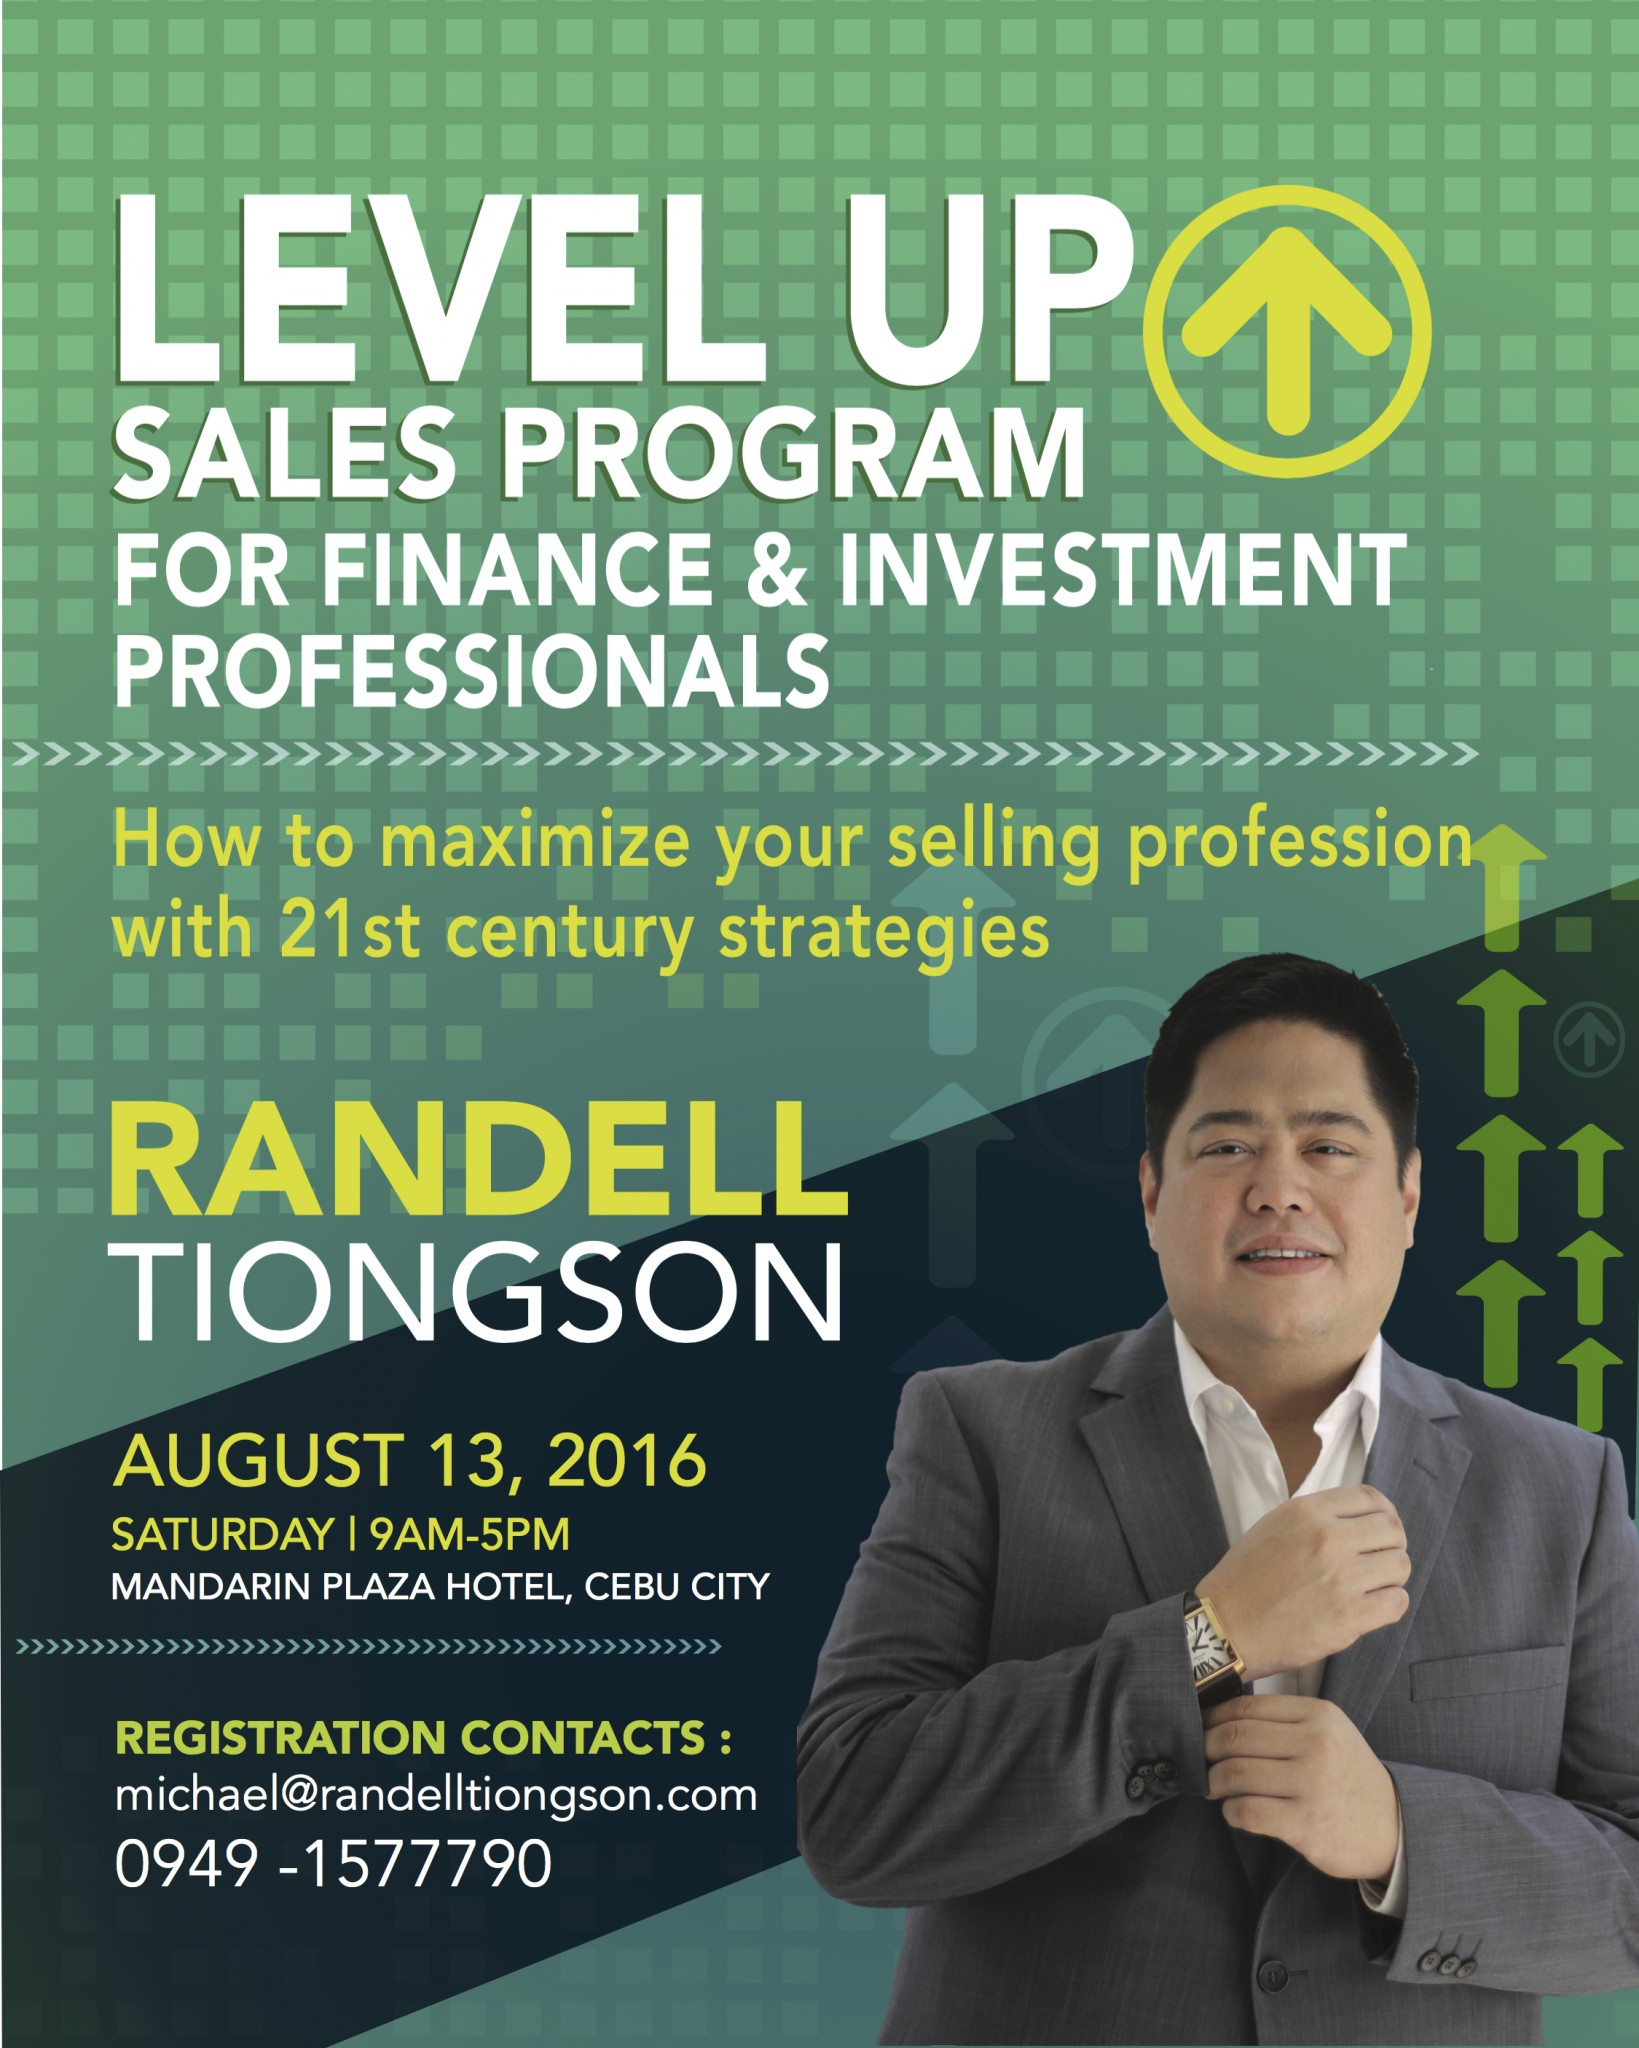 Level Up Sales Poster AUG 13